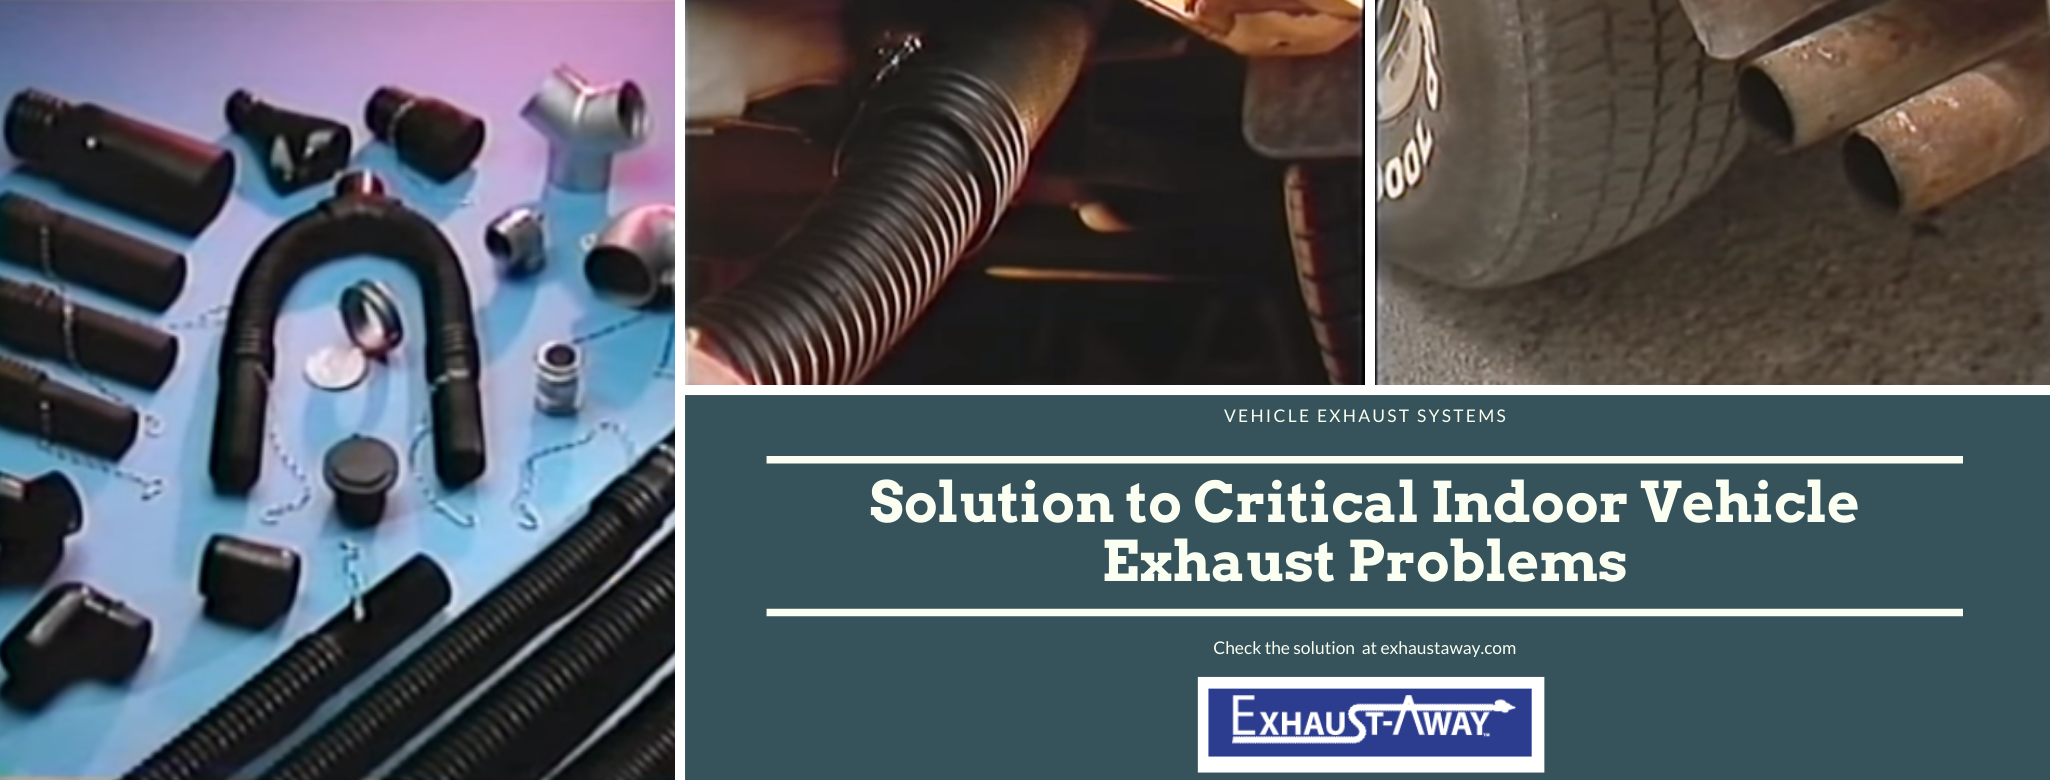 Solutions to Vehicle Exhaust Problems